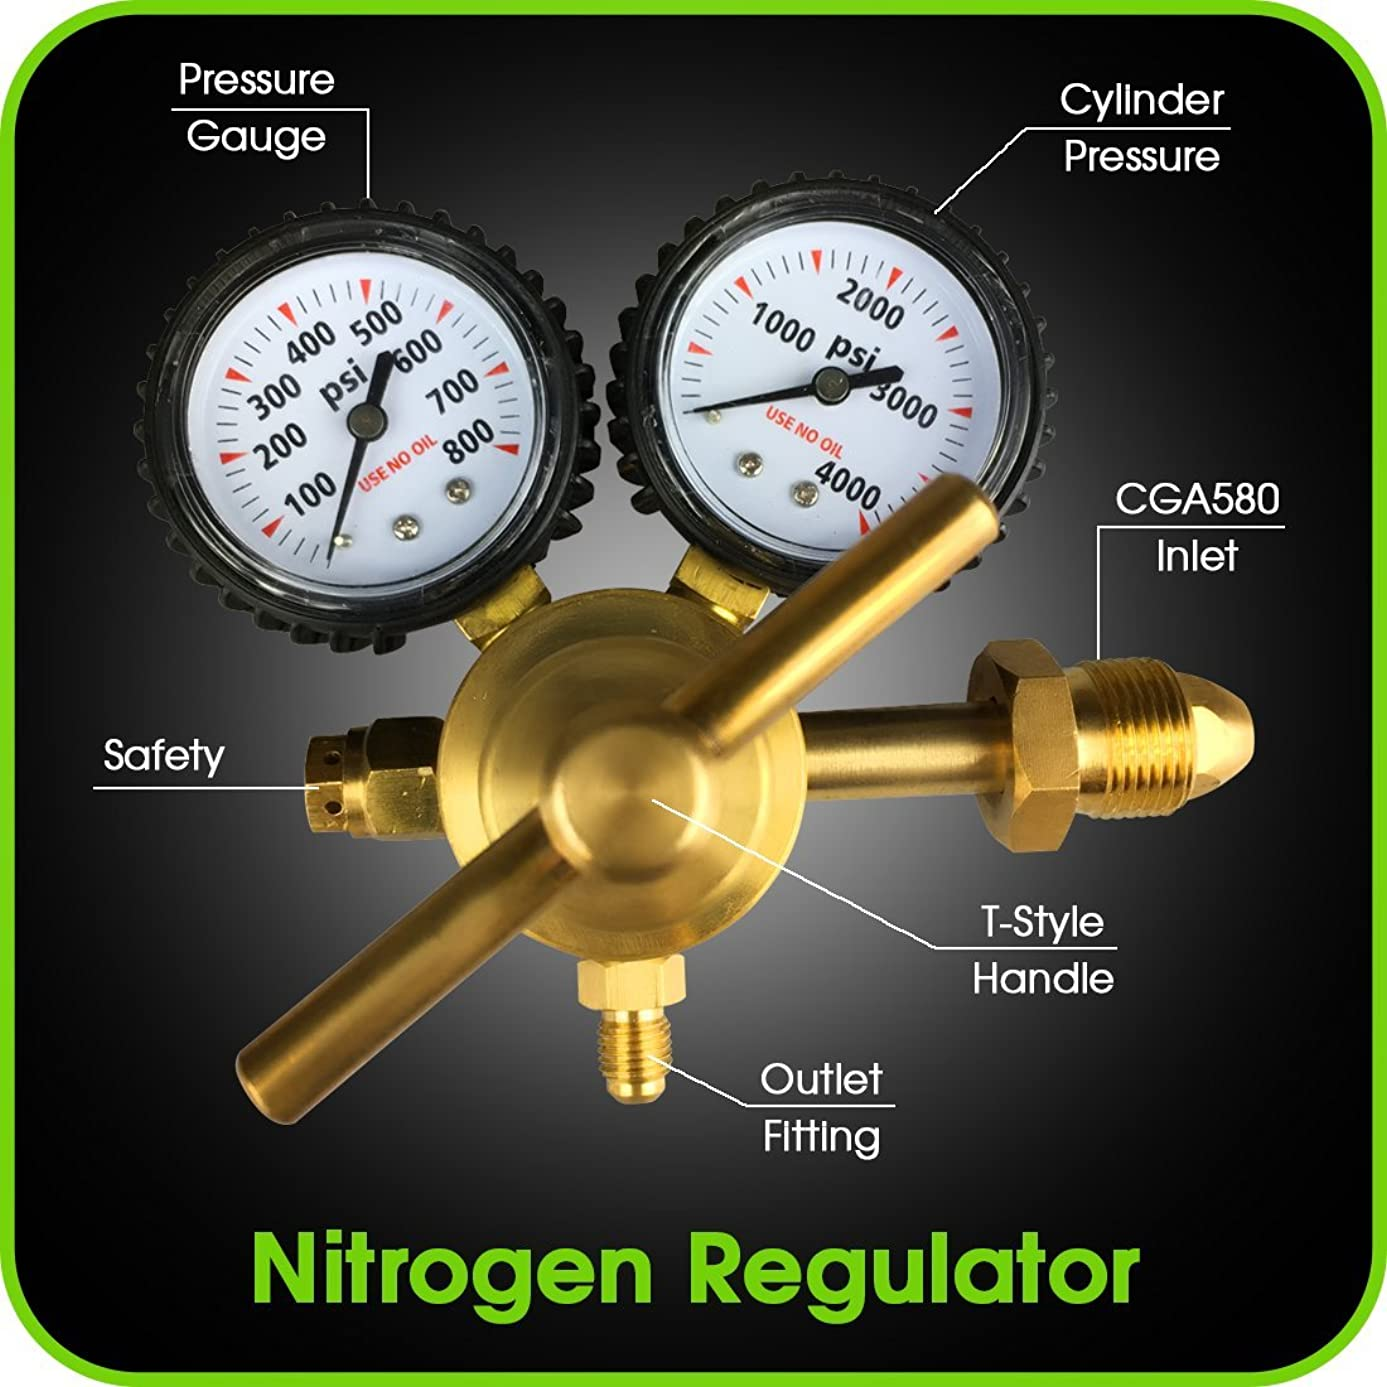 MANATEE Nitrogen Regulator with 0-800 PSI Delivery Pressure, CGA580 Inlet Connection and 1/4-Inch Male Flare Outlet Connection Durable Brass Accurate and Dependable - HVAC Purging Solid Brass